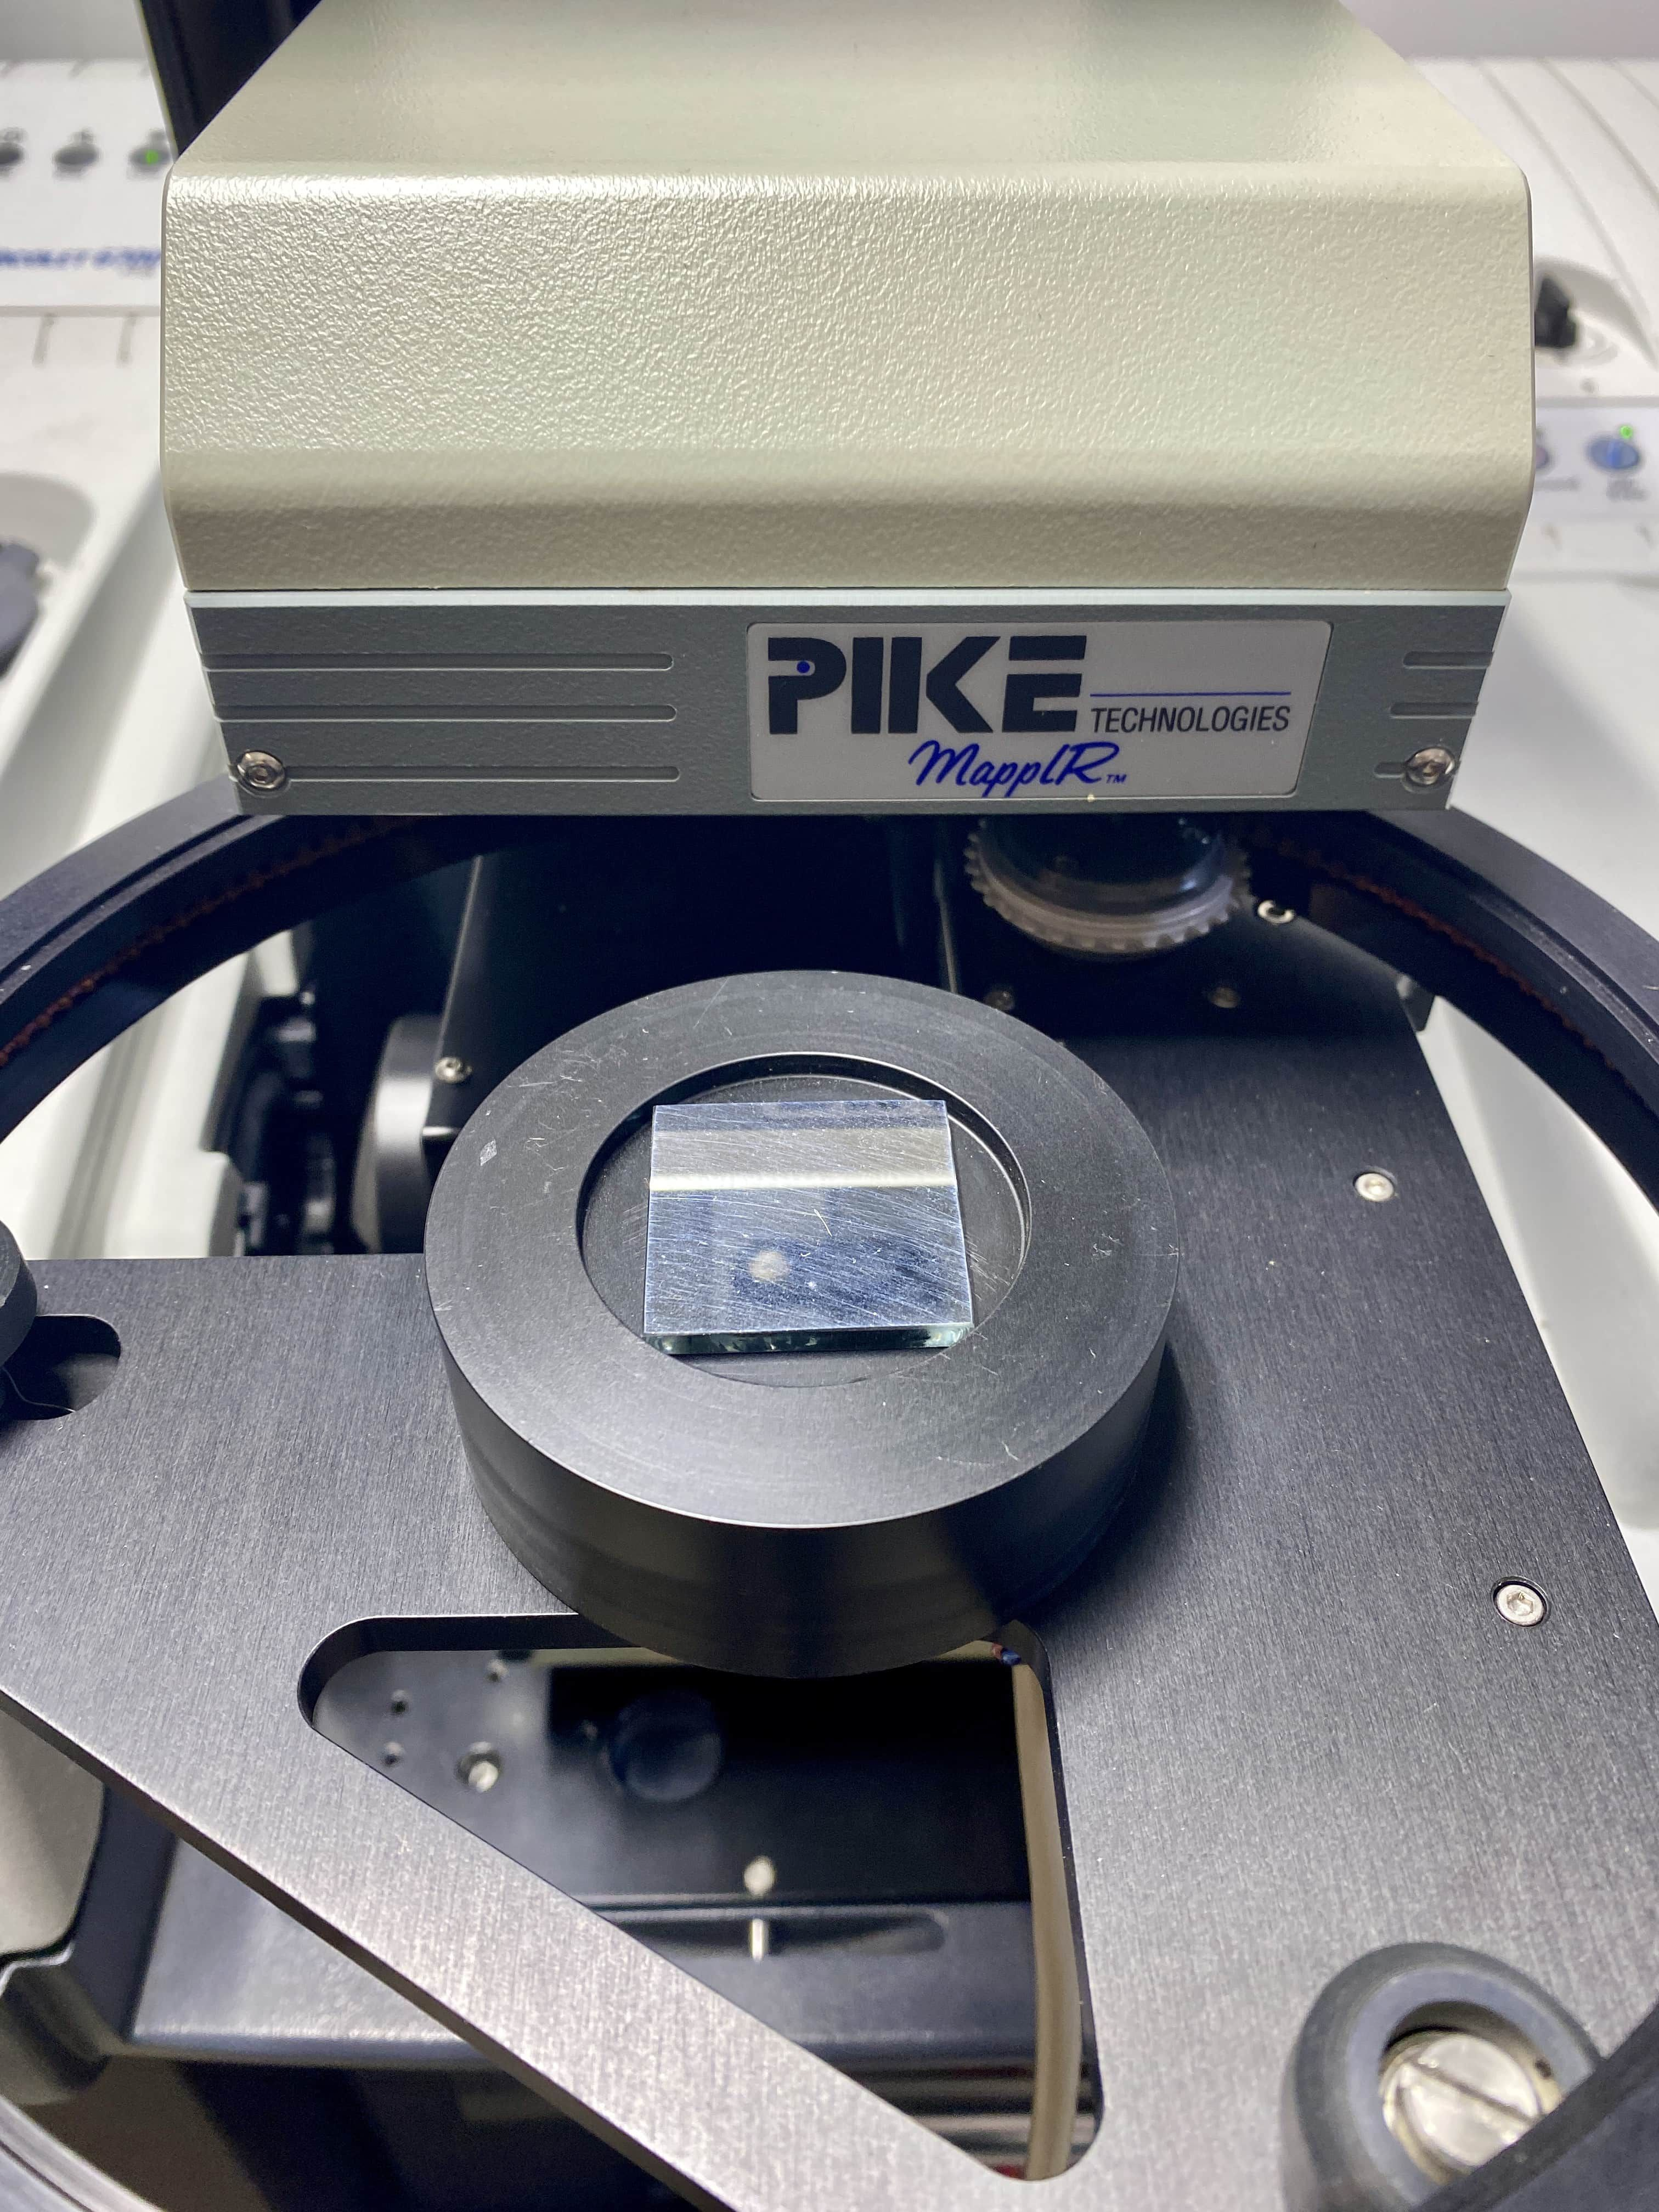 Thermo Nicolet 6700 FTIR with Pike MAPIR